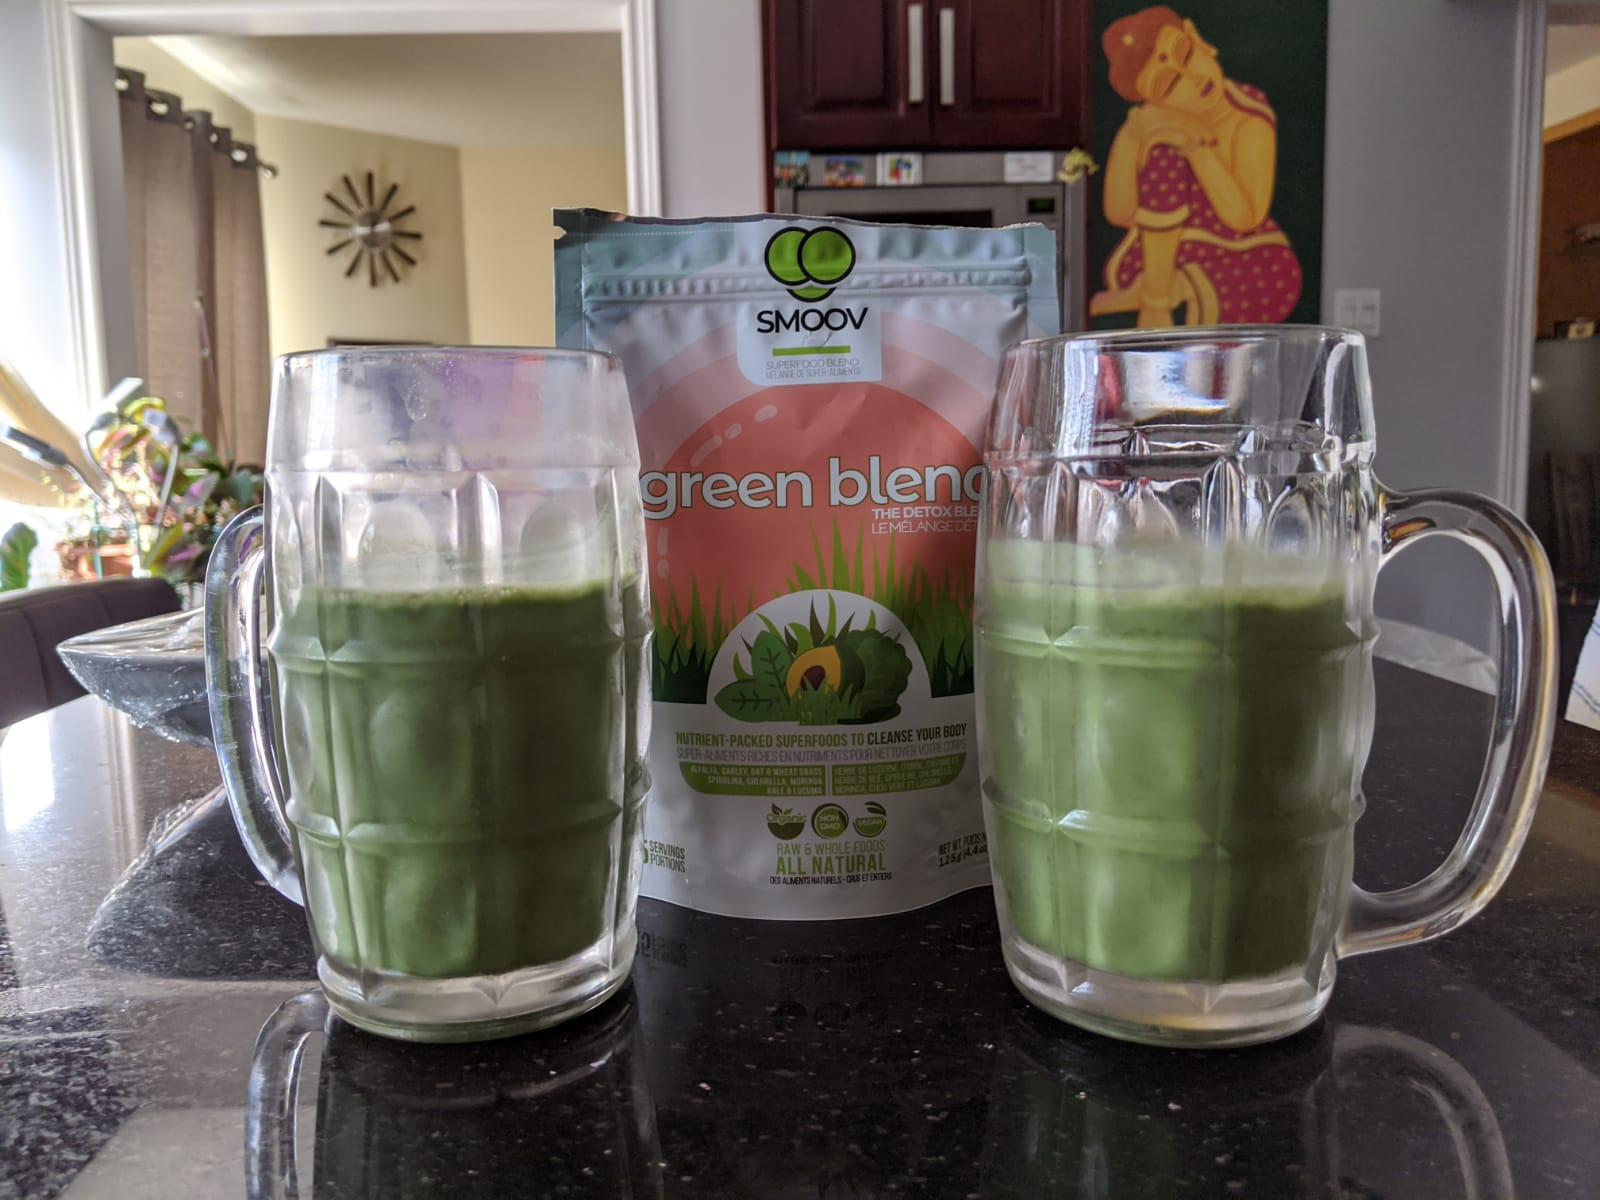 SMOOV green blend - Easiest all-natural way to get your greens and nutrition, 9 green superfoods making it the most complete blends of greens. Organic, Vegan, Plant-based Superfood  Powder Smoothie. Morning boost, detox, fight bloat, weight loss, digestion, immunity, health